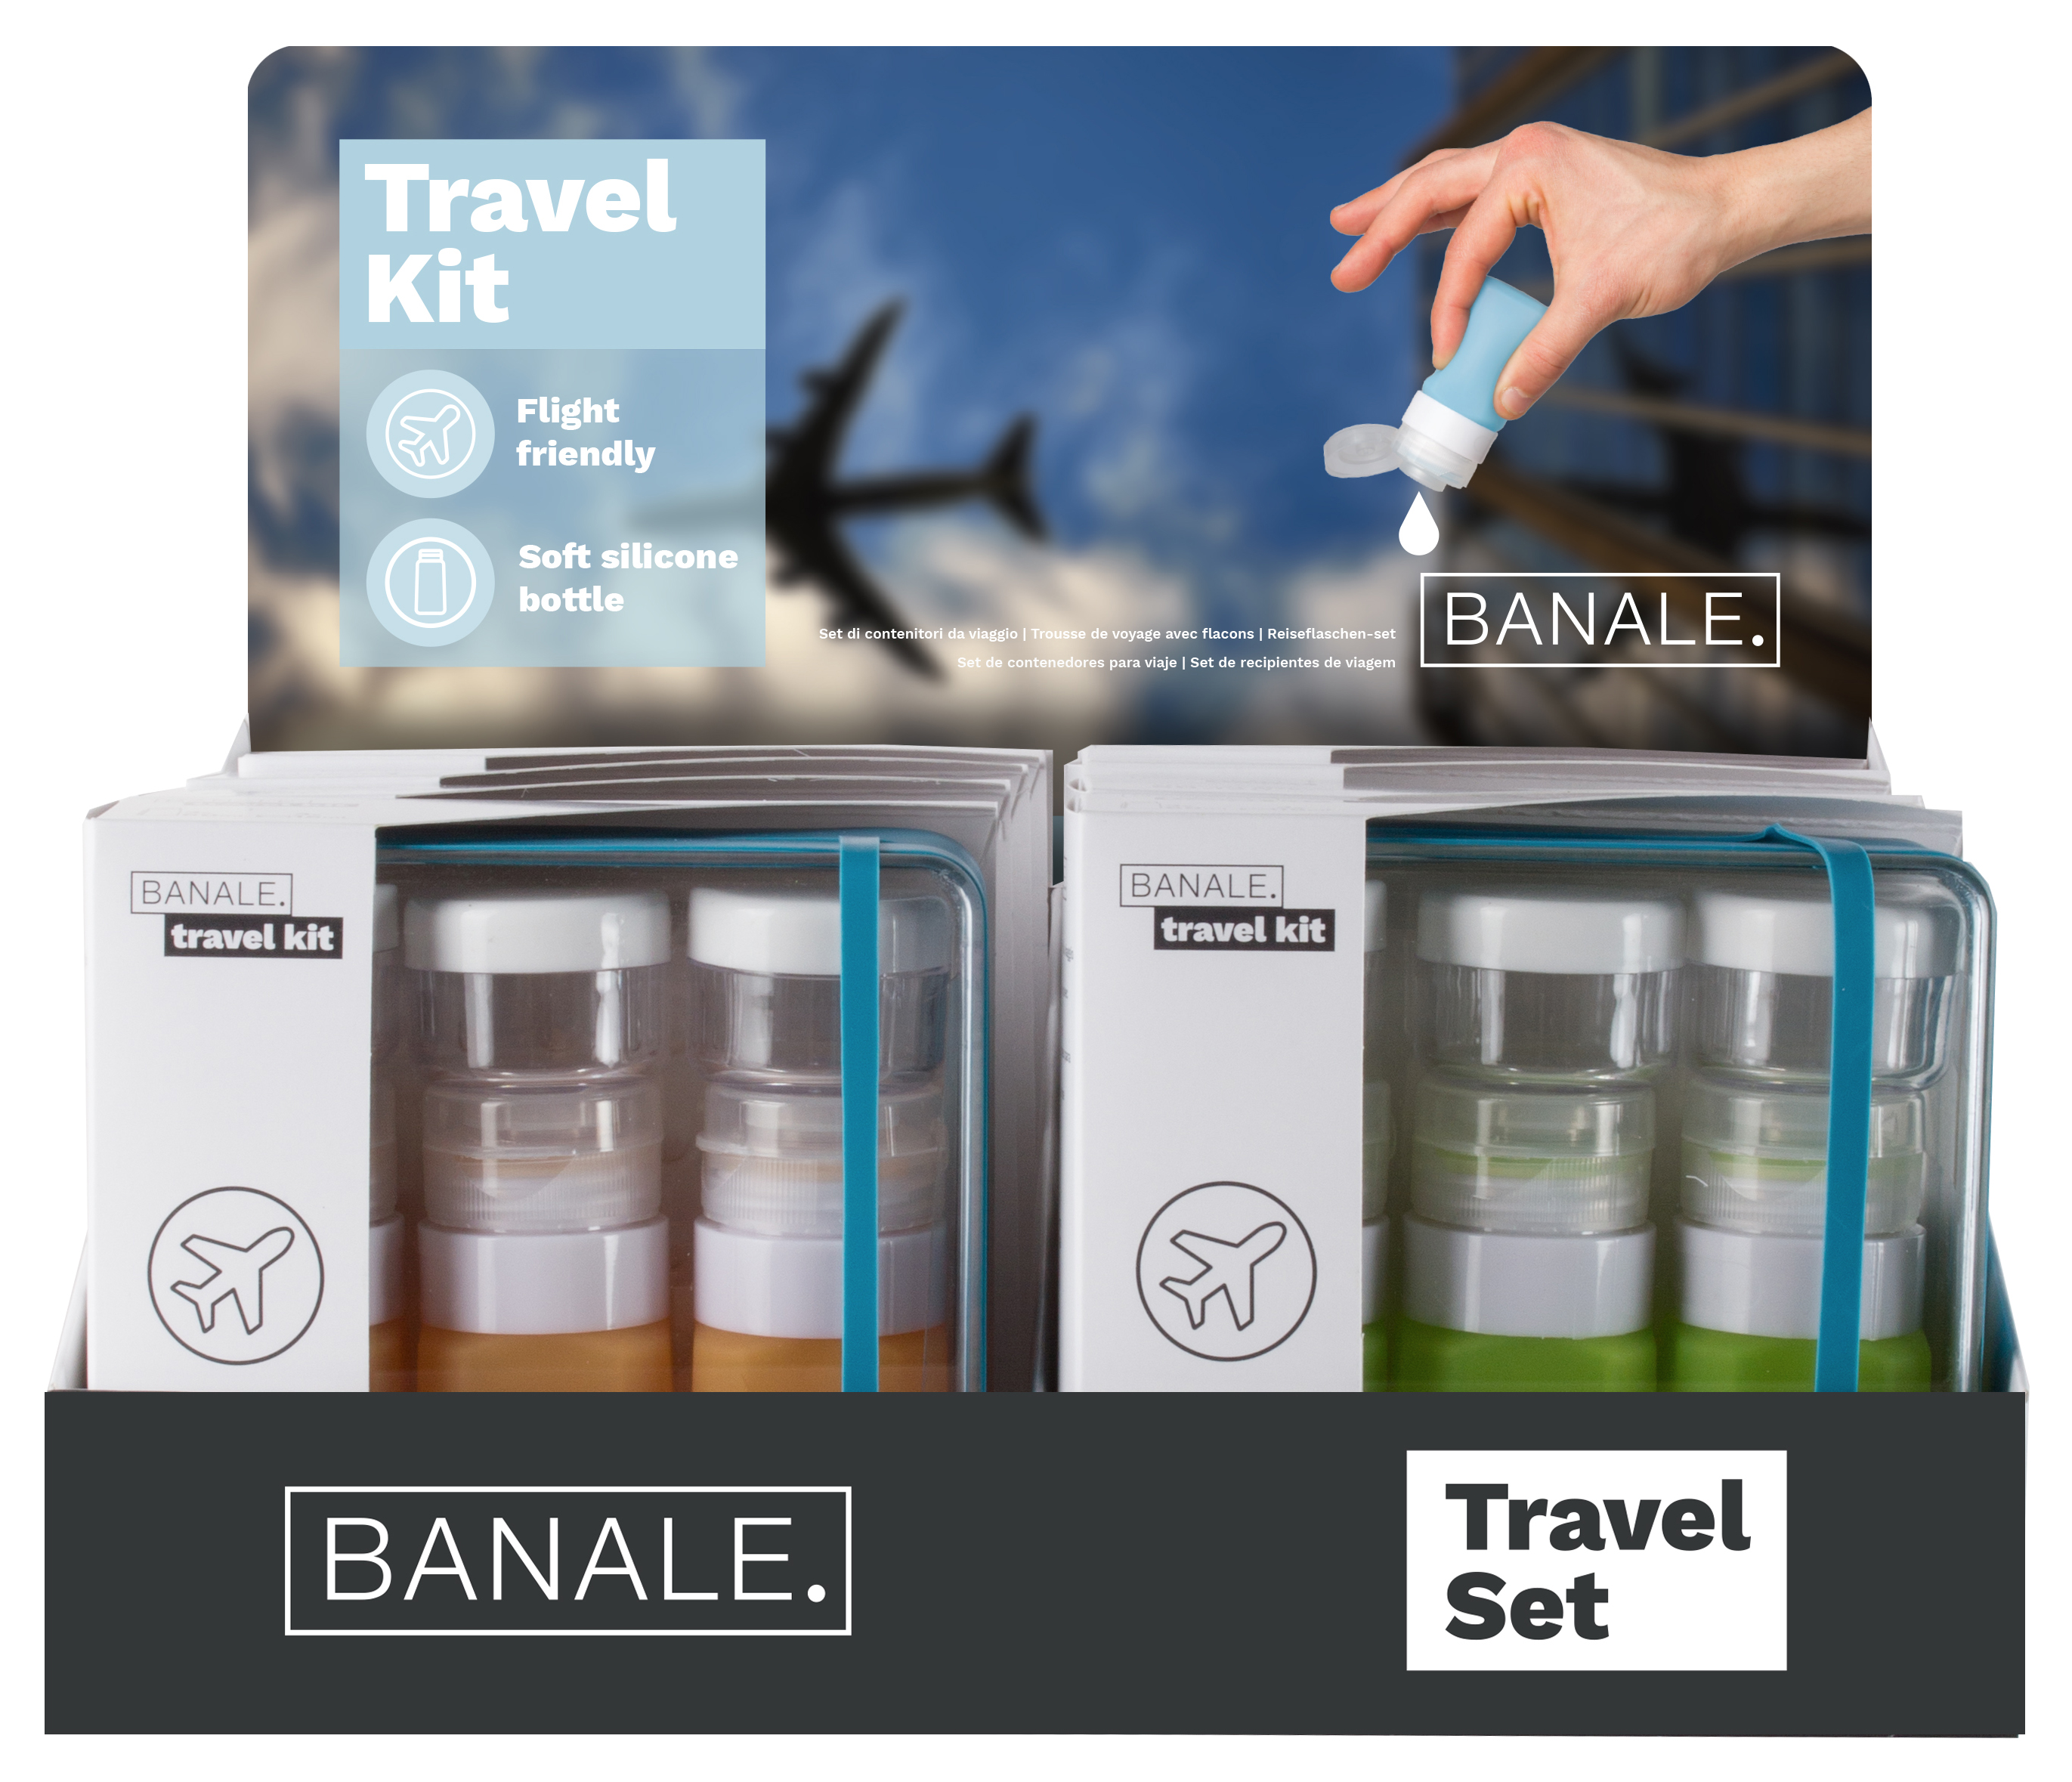 Travel kit starter kit